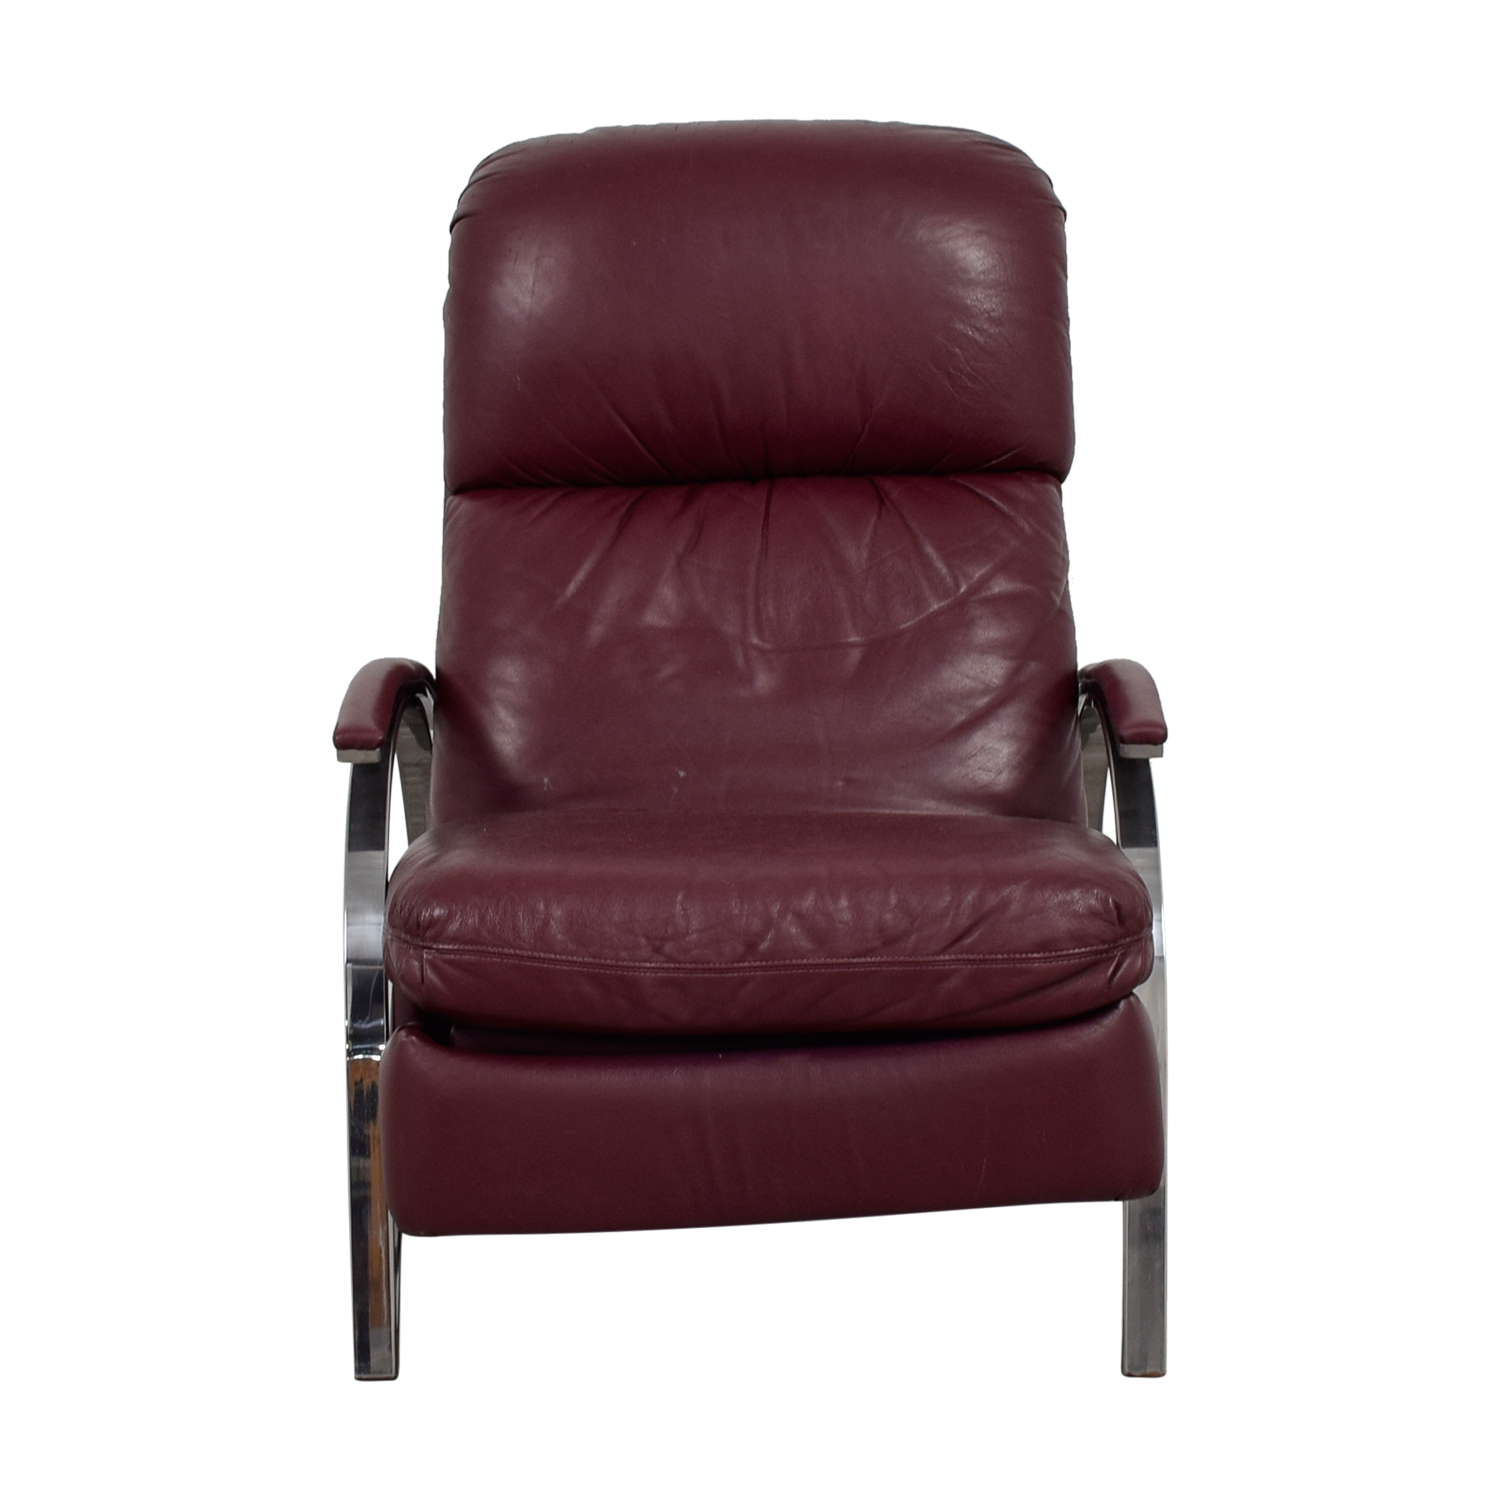 Buy Burgundy Leather Recliner Chair